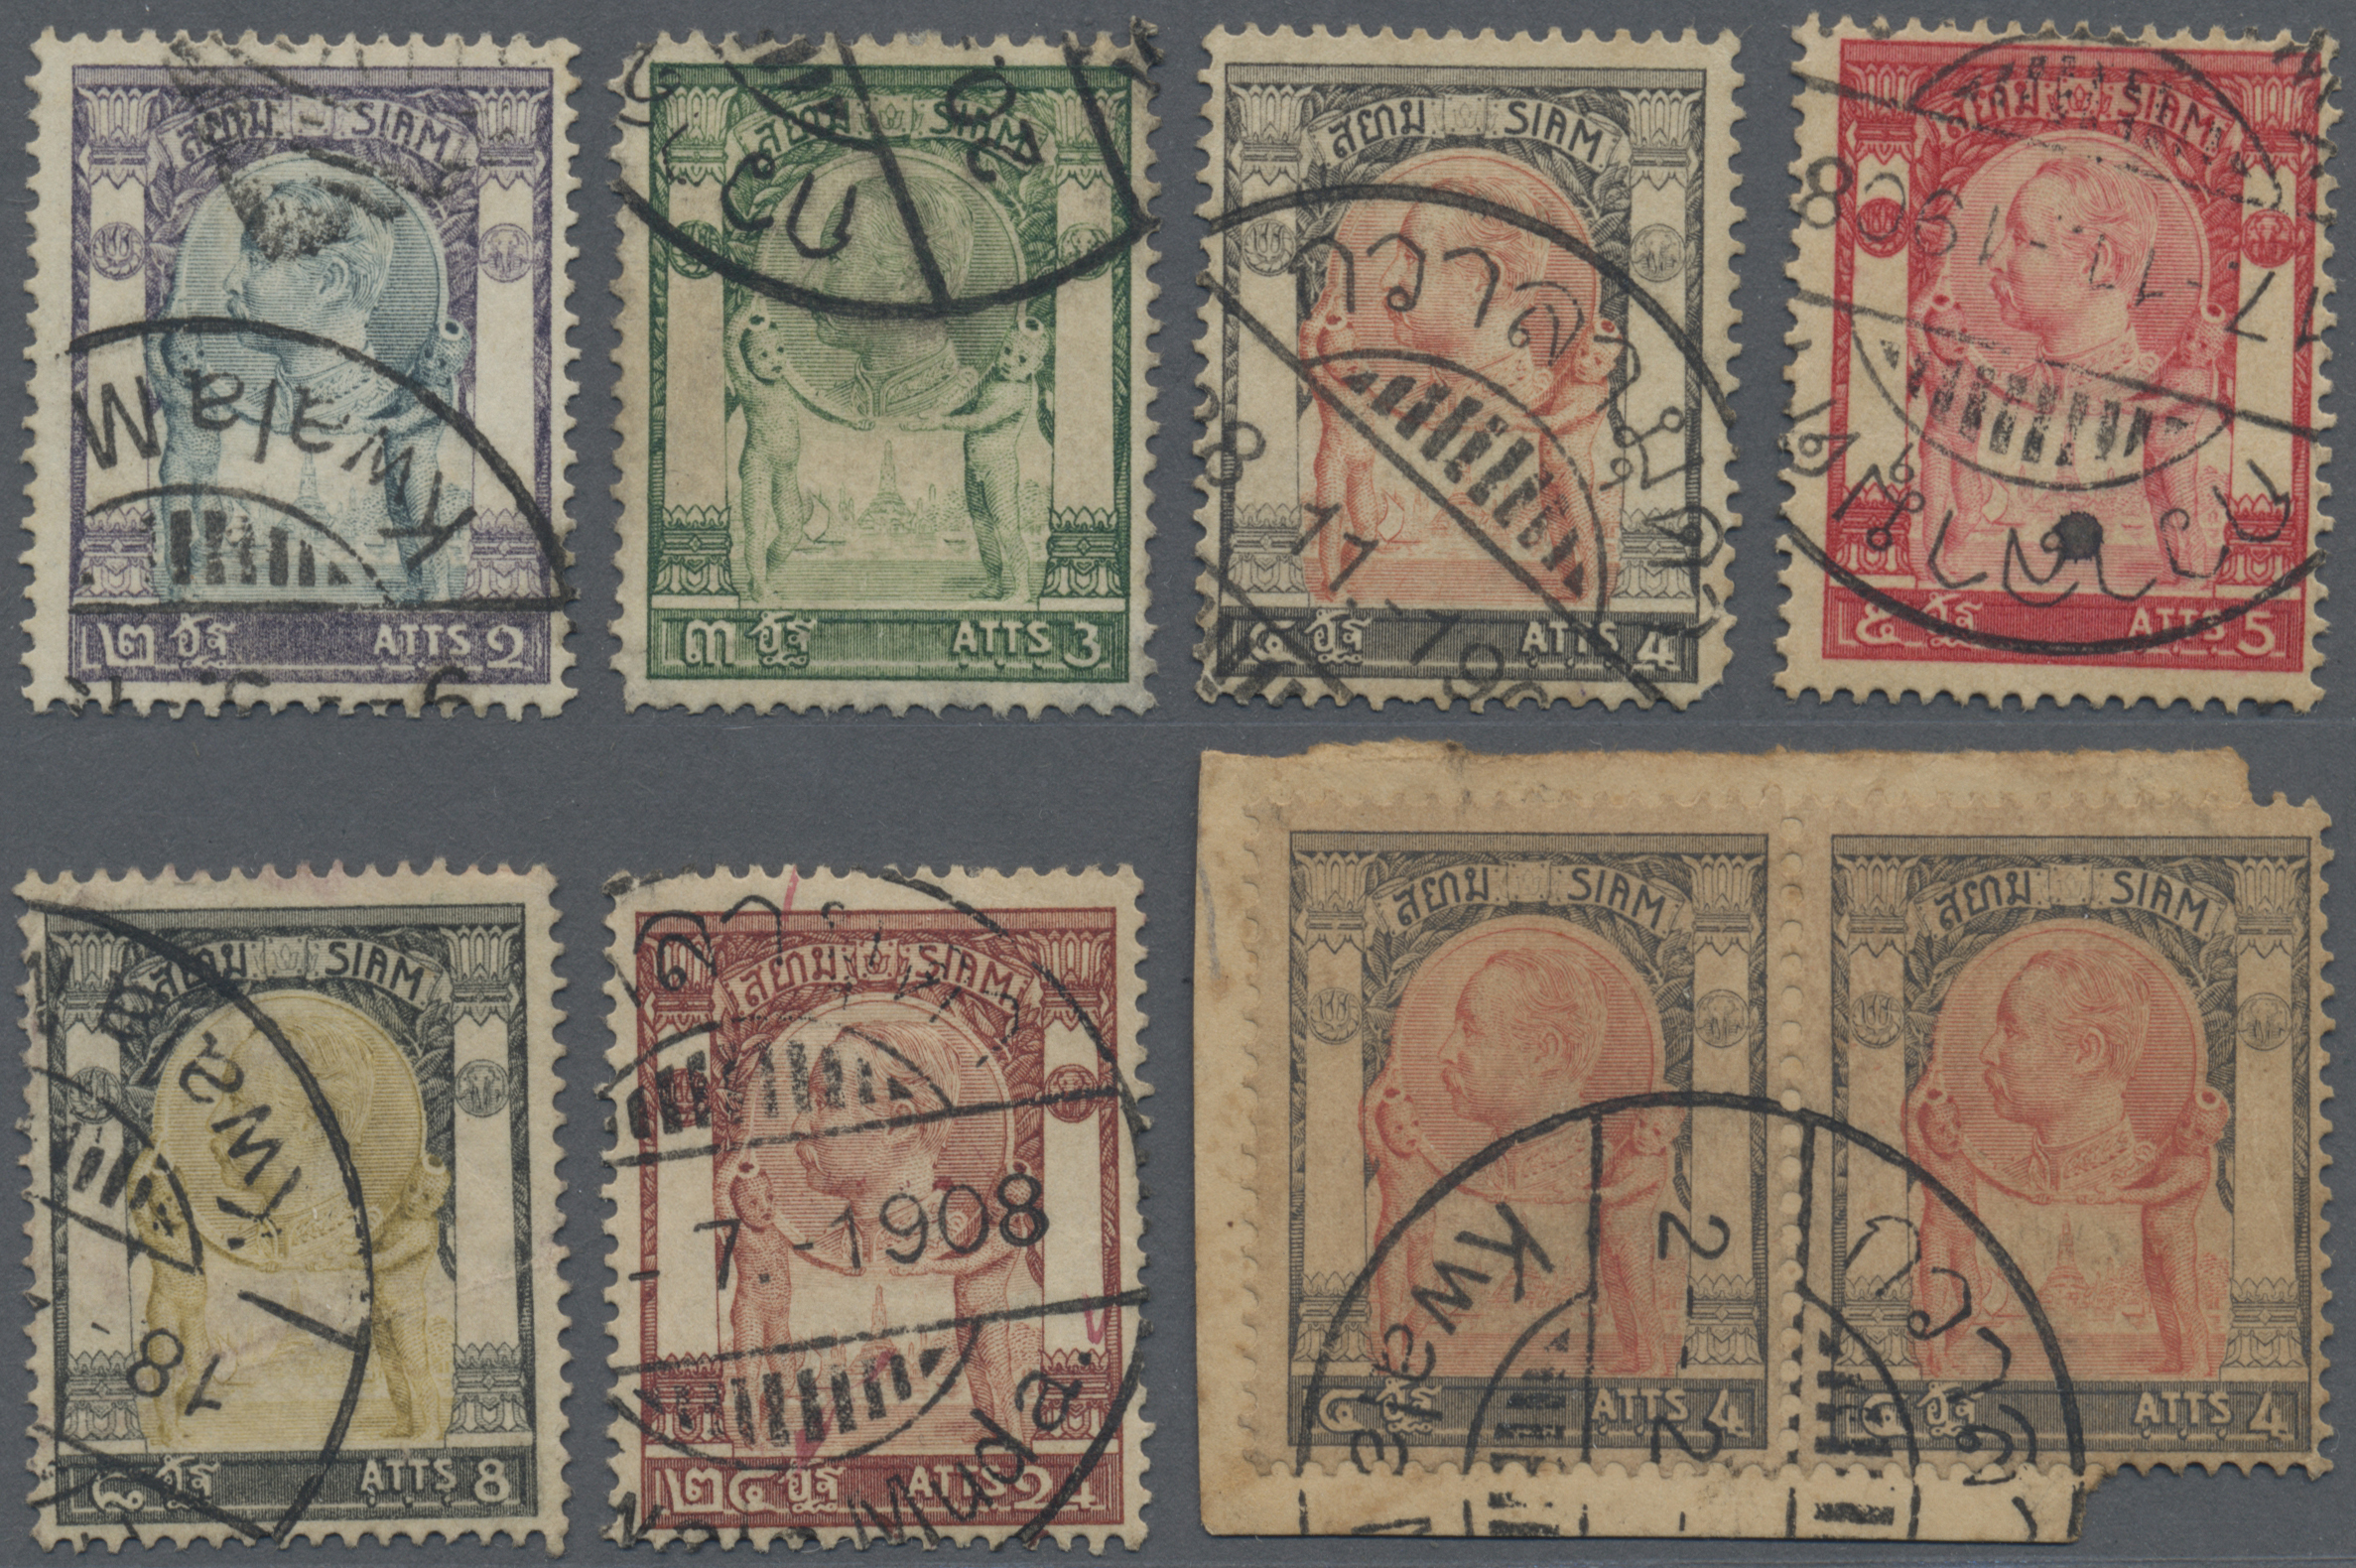 Lot 9068 - Malaiische Staaten - Kedah  -  Auktionshaus Christoph Gärtner GmbH & Co. KG Philately: ASIA single lots including Special Catalog Malaya Auction #39 Day 3